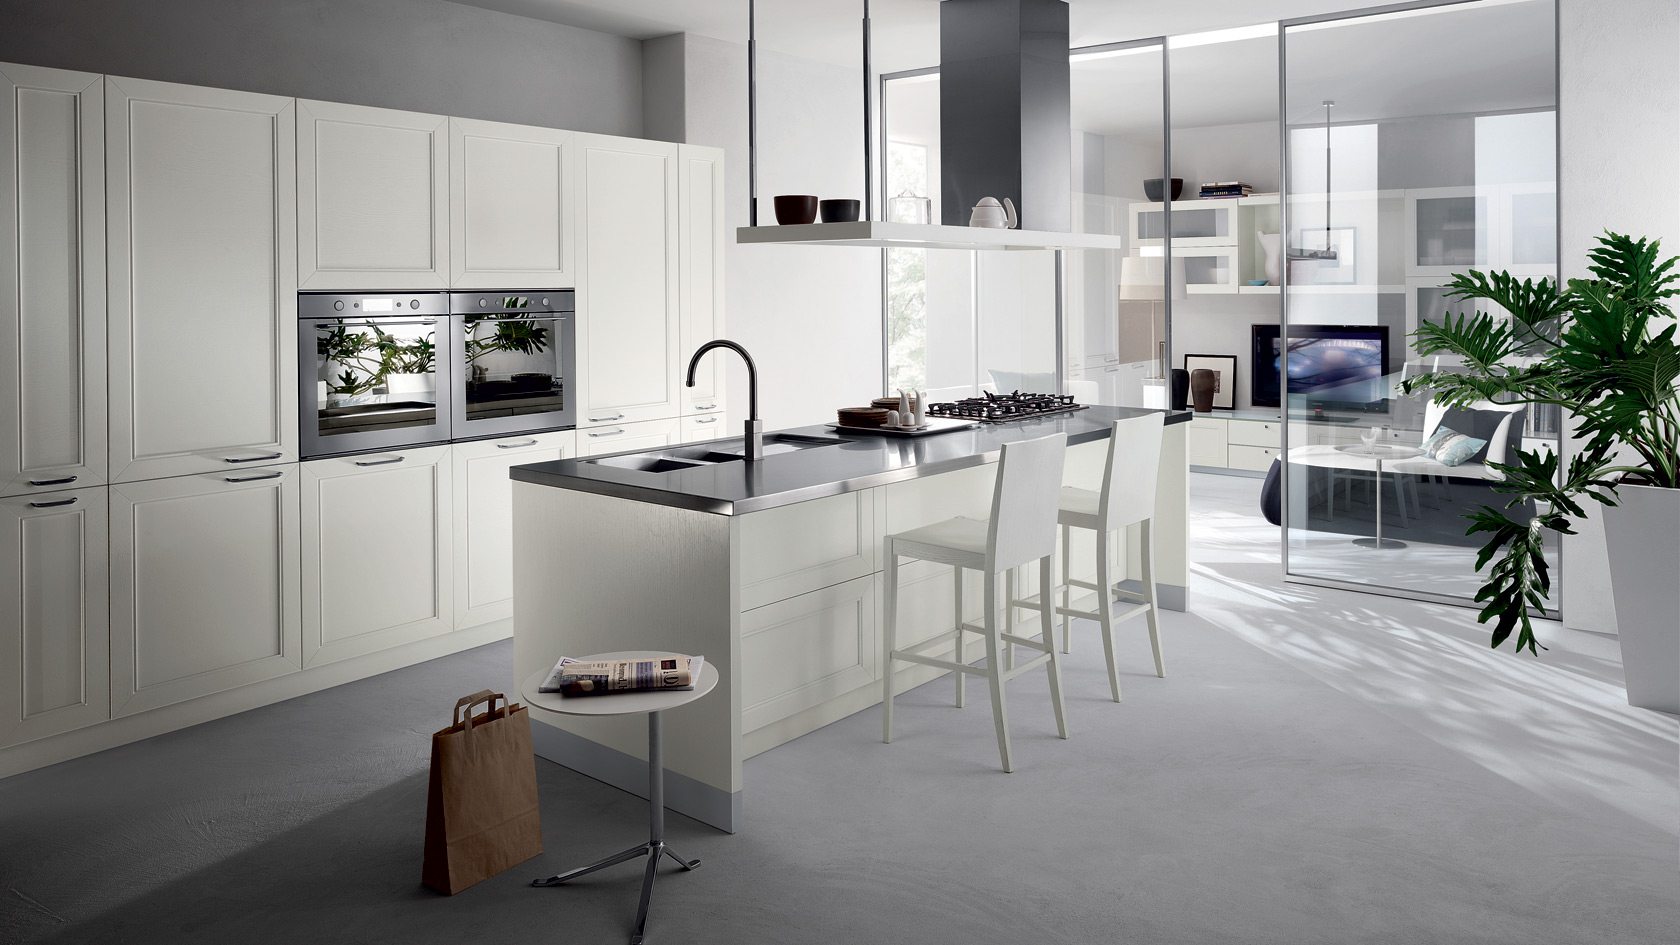 Best Cucine Moderne Con Isola Scavolini Gallery - Design & Ideas ...